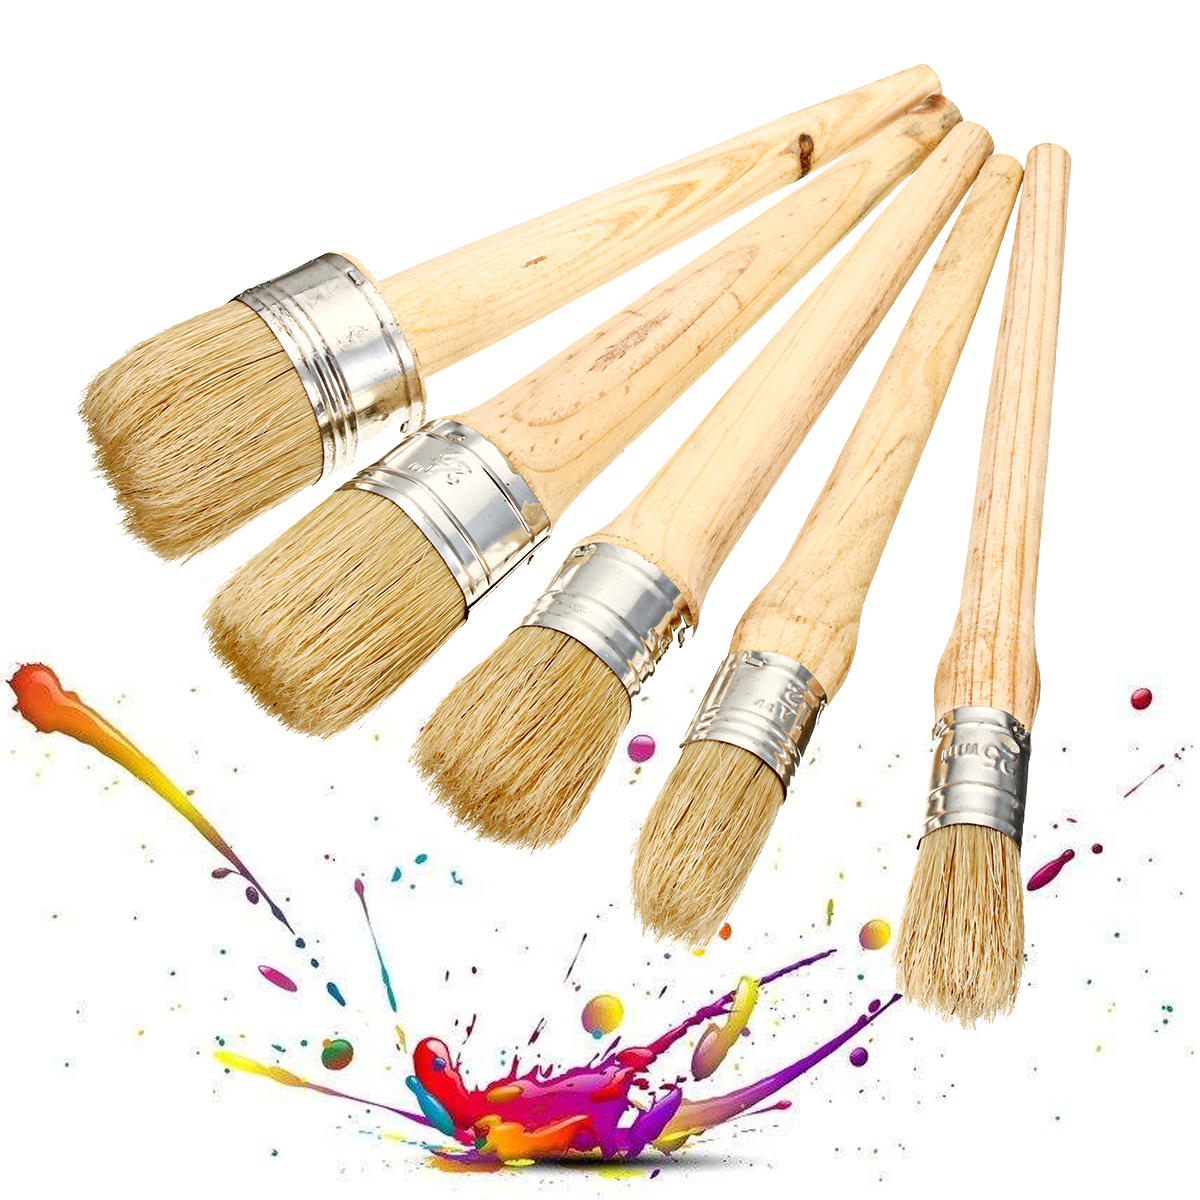 20/25/30/40/50mm Professional Chalk Paint Wax Brushes P